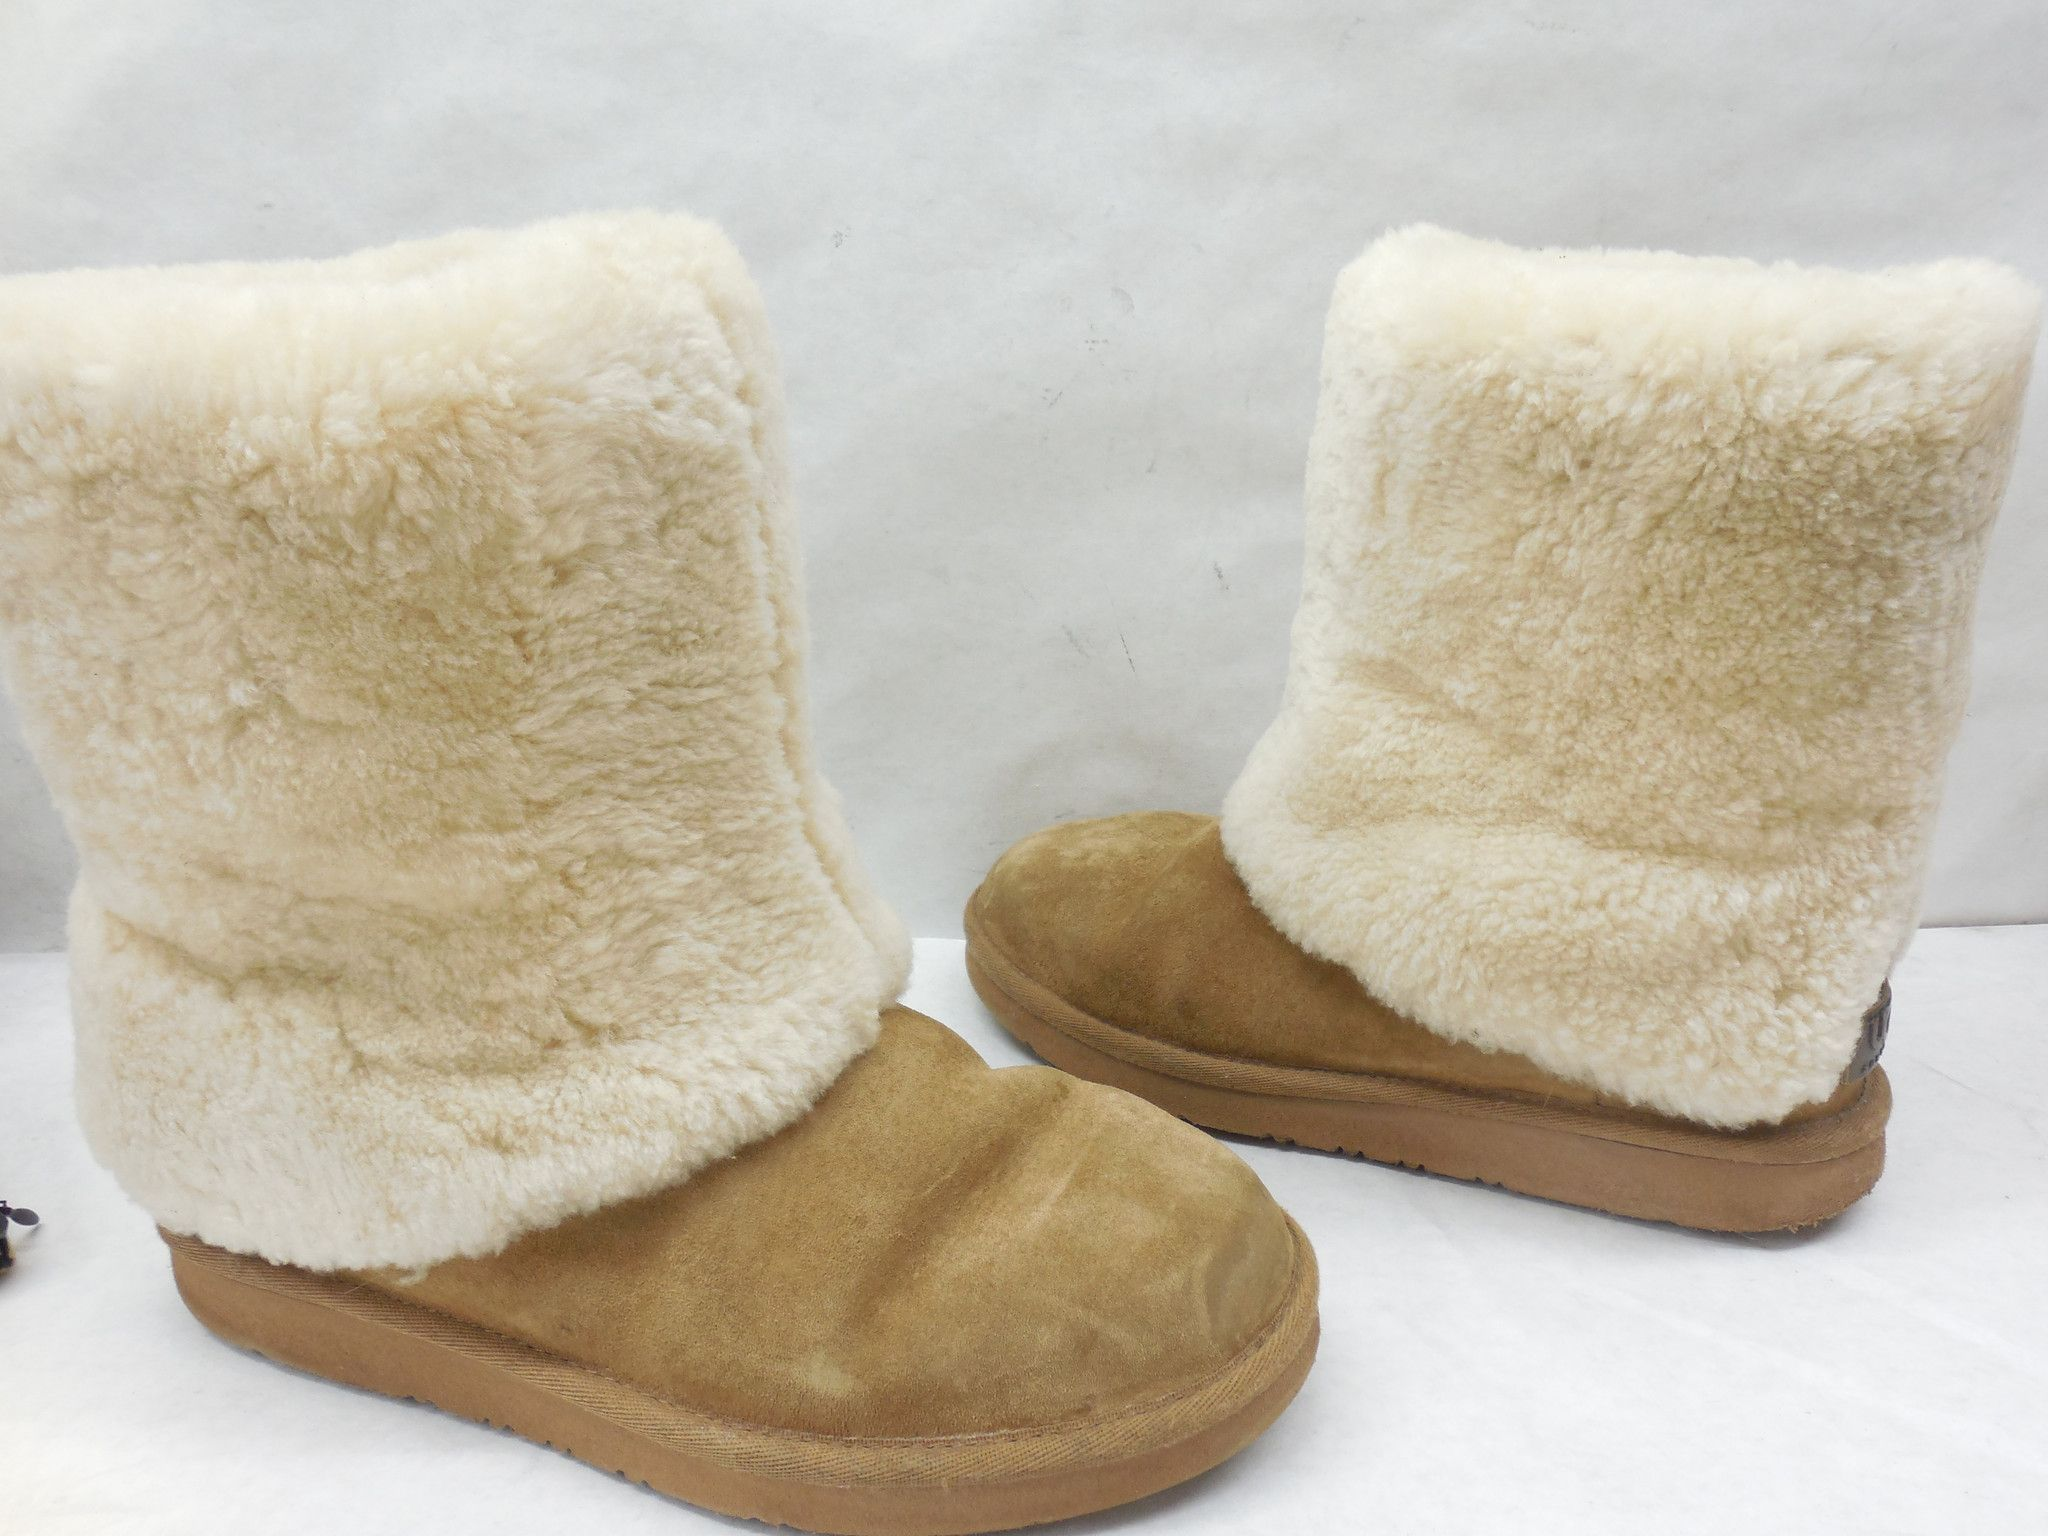 c687244a41d Pre-owned UGG Australia 1006011 Chestnut Patten Sude Boots Size 8 ...